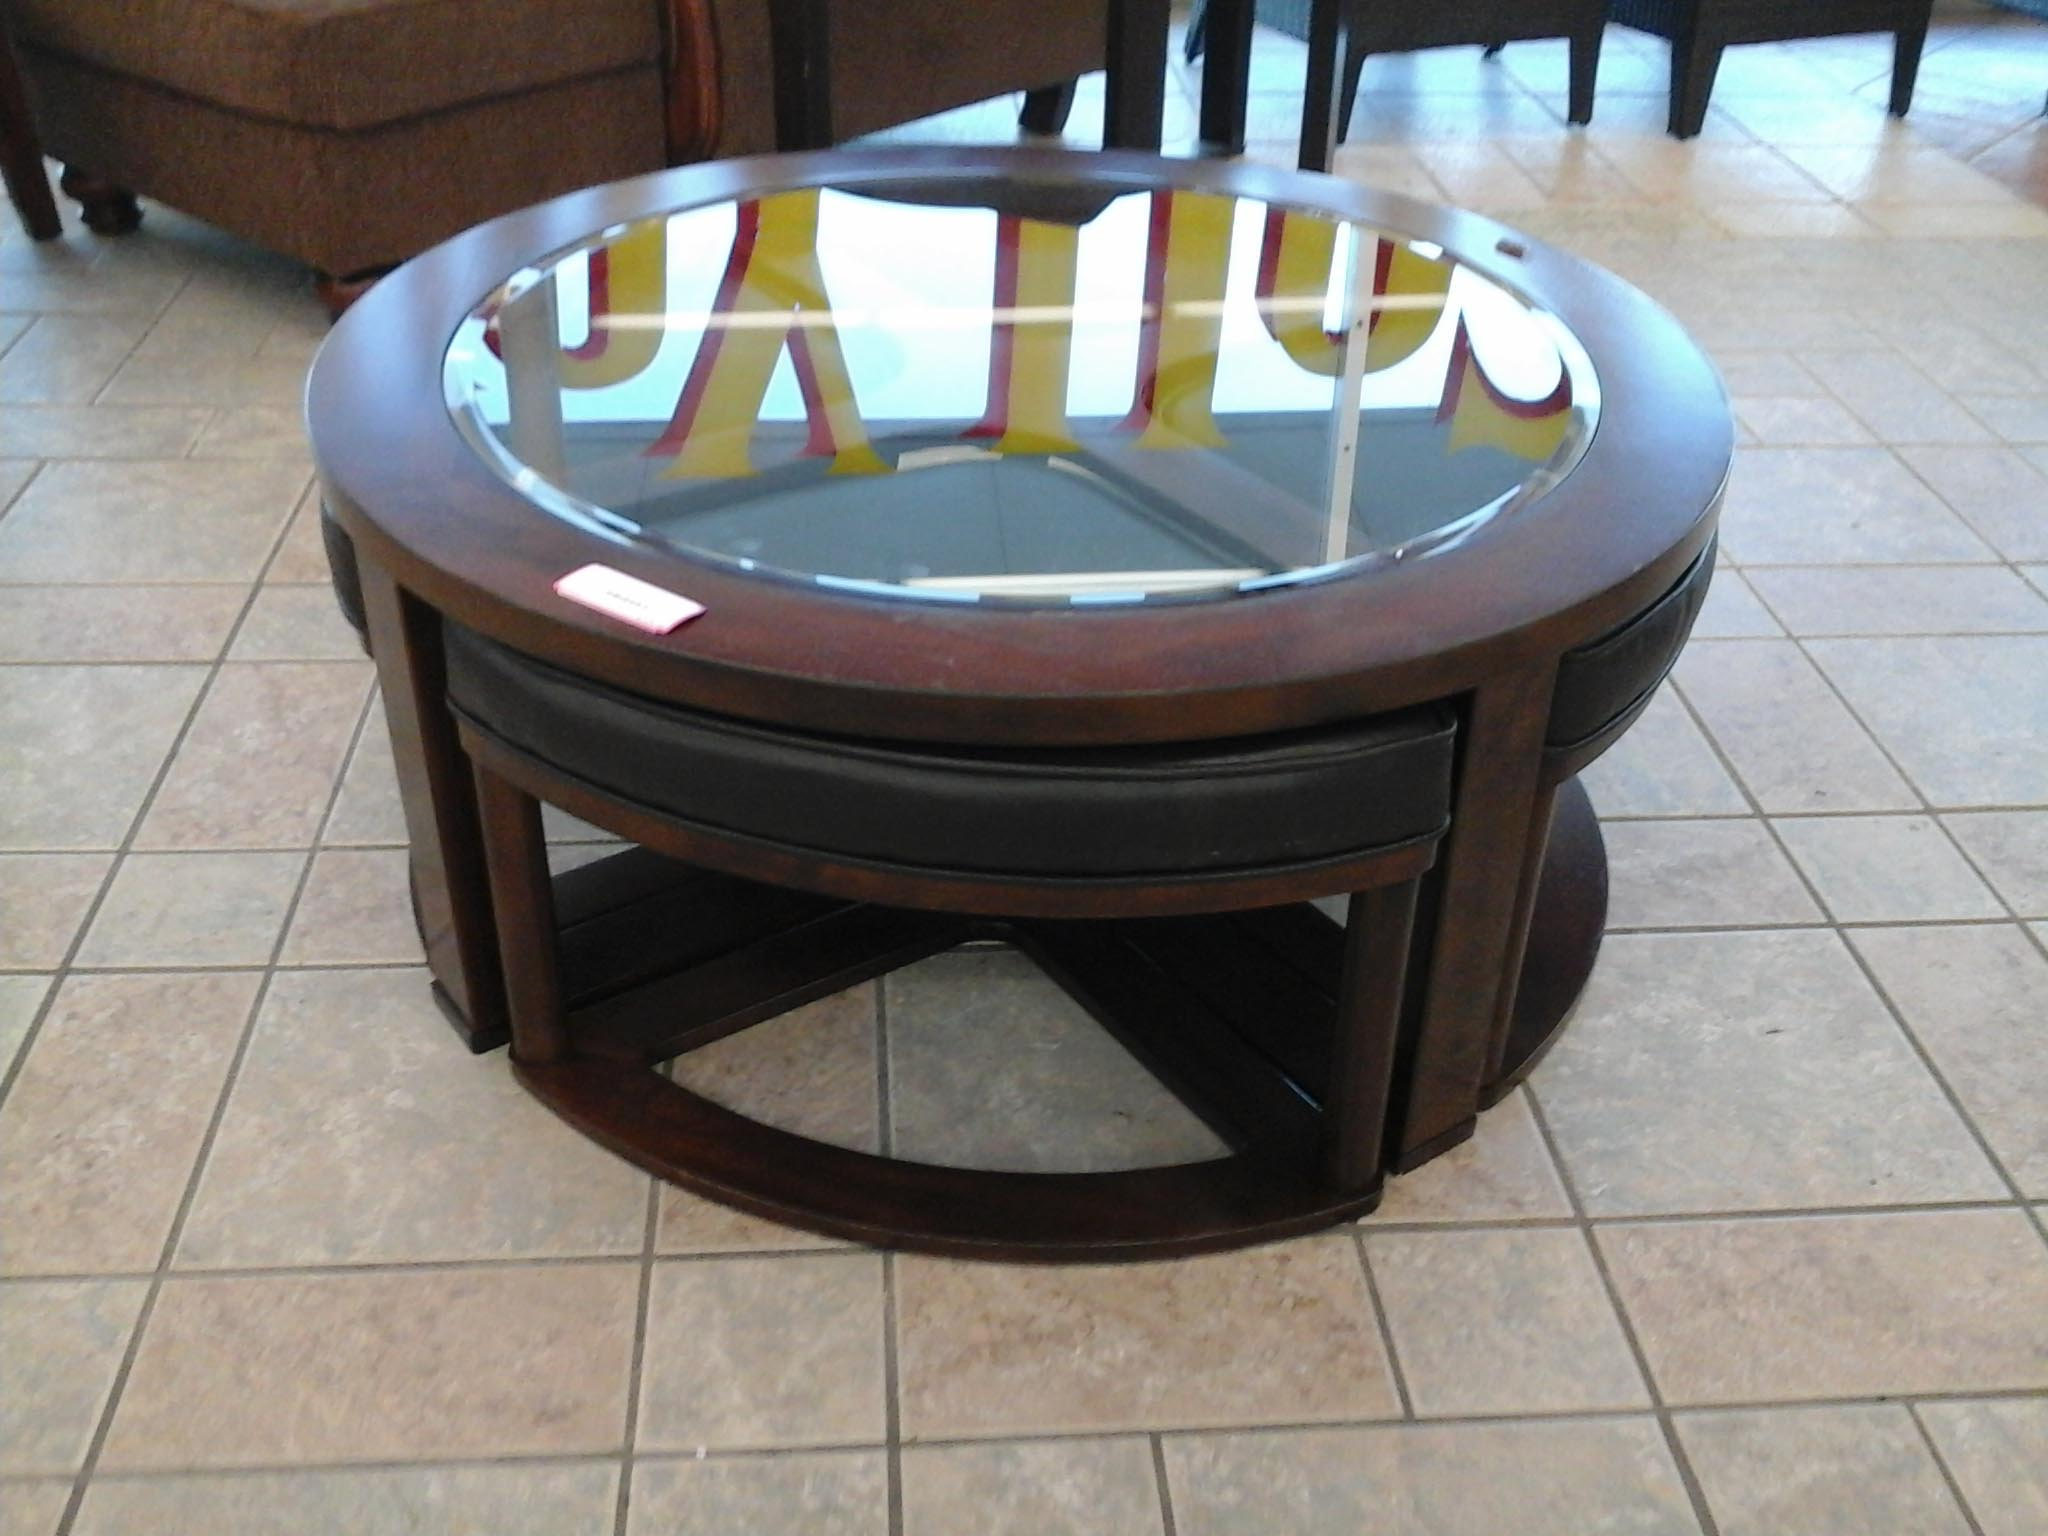 Coffee Table with Stools Would Adorn Every Daily Life and Festive